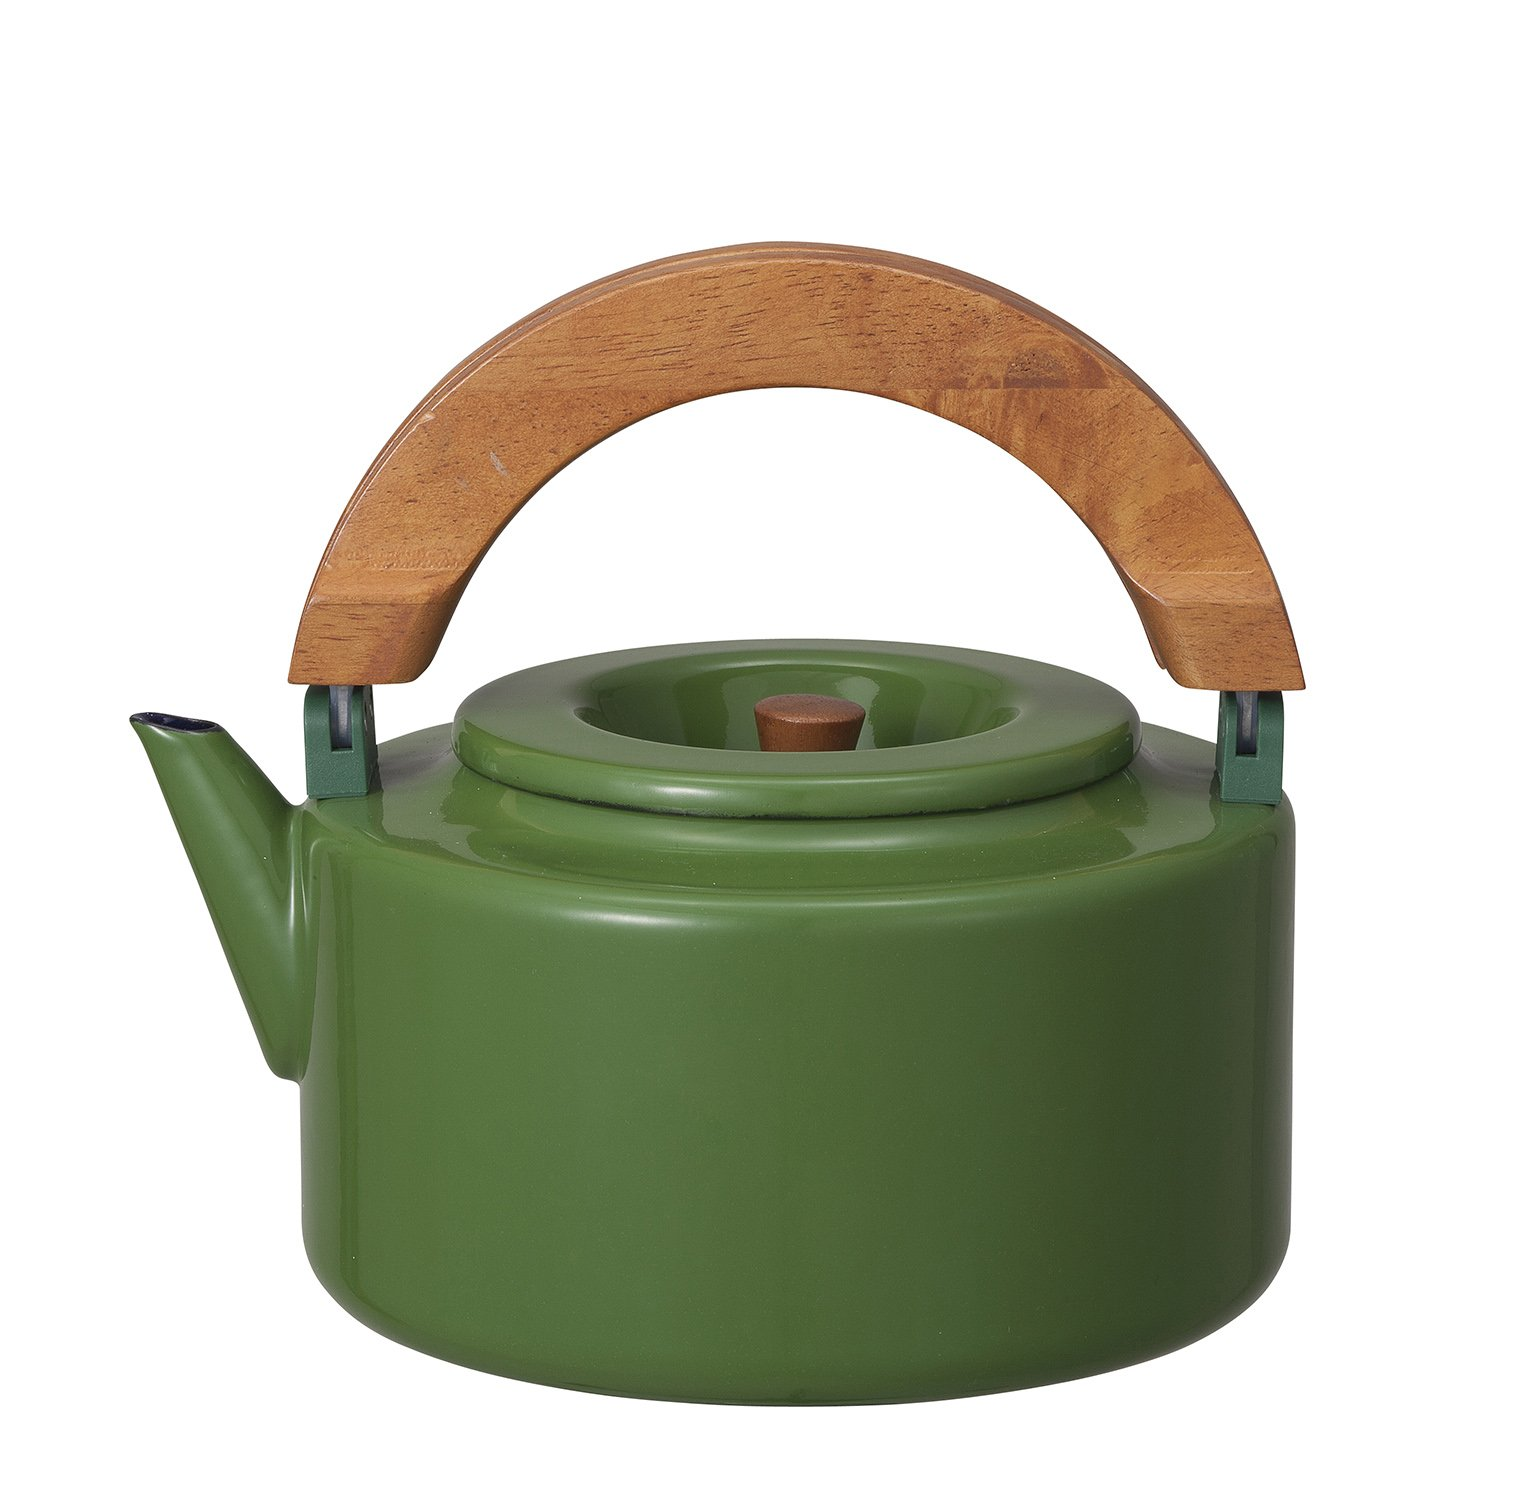 CB JAPAN Nordica Flat Kettle (British Green)【Japan Domestic genuine products】